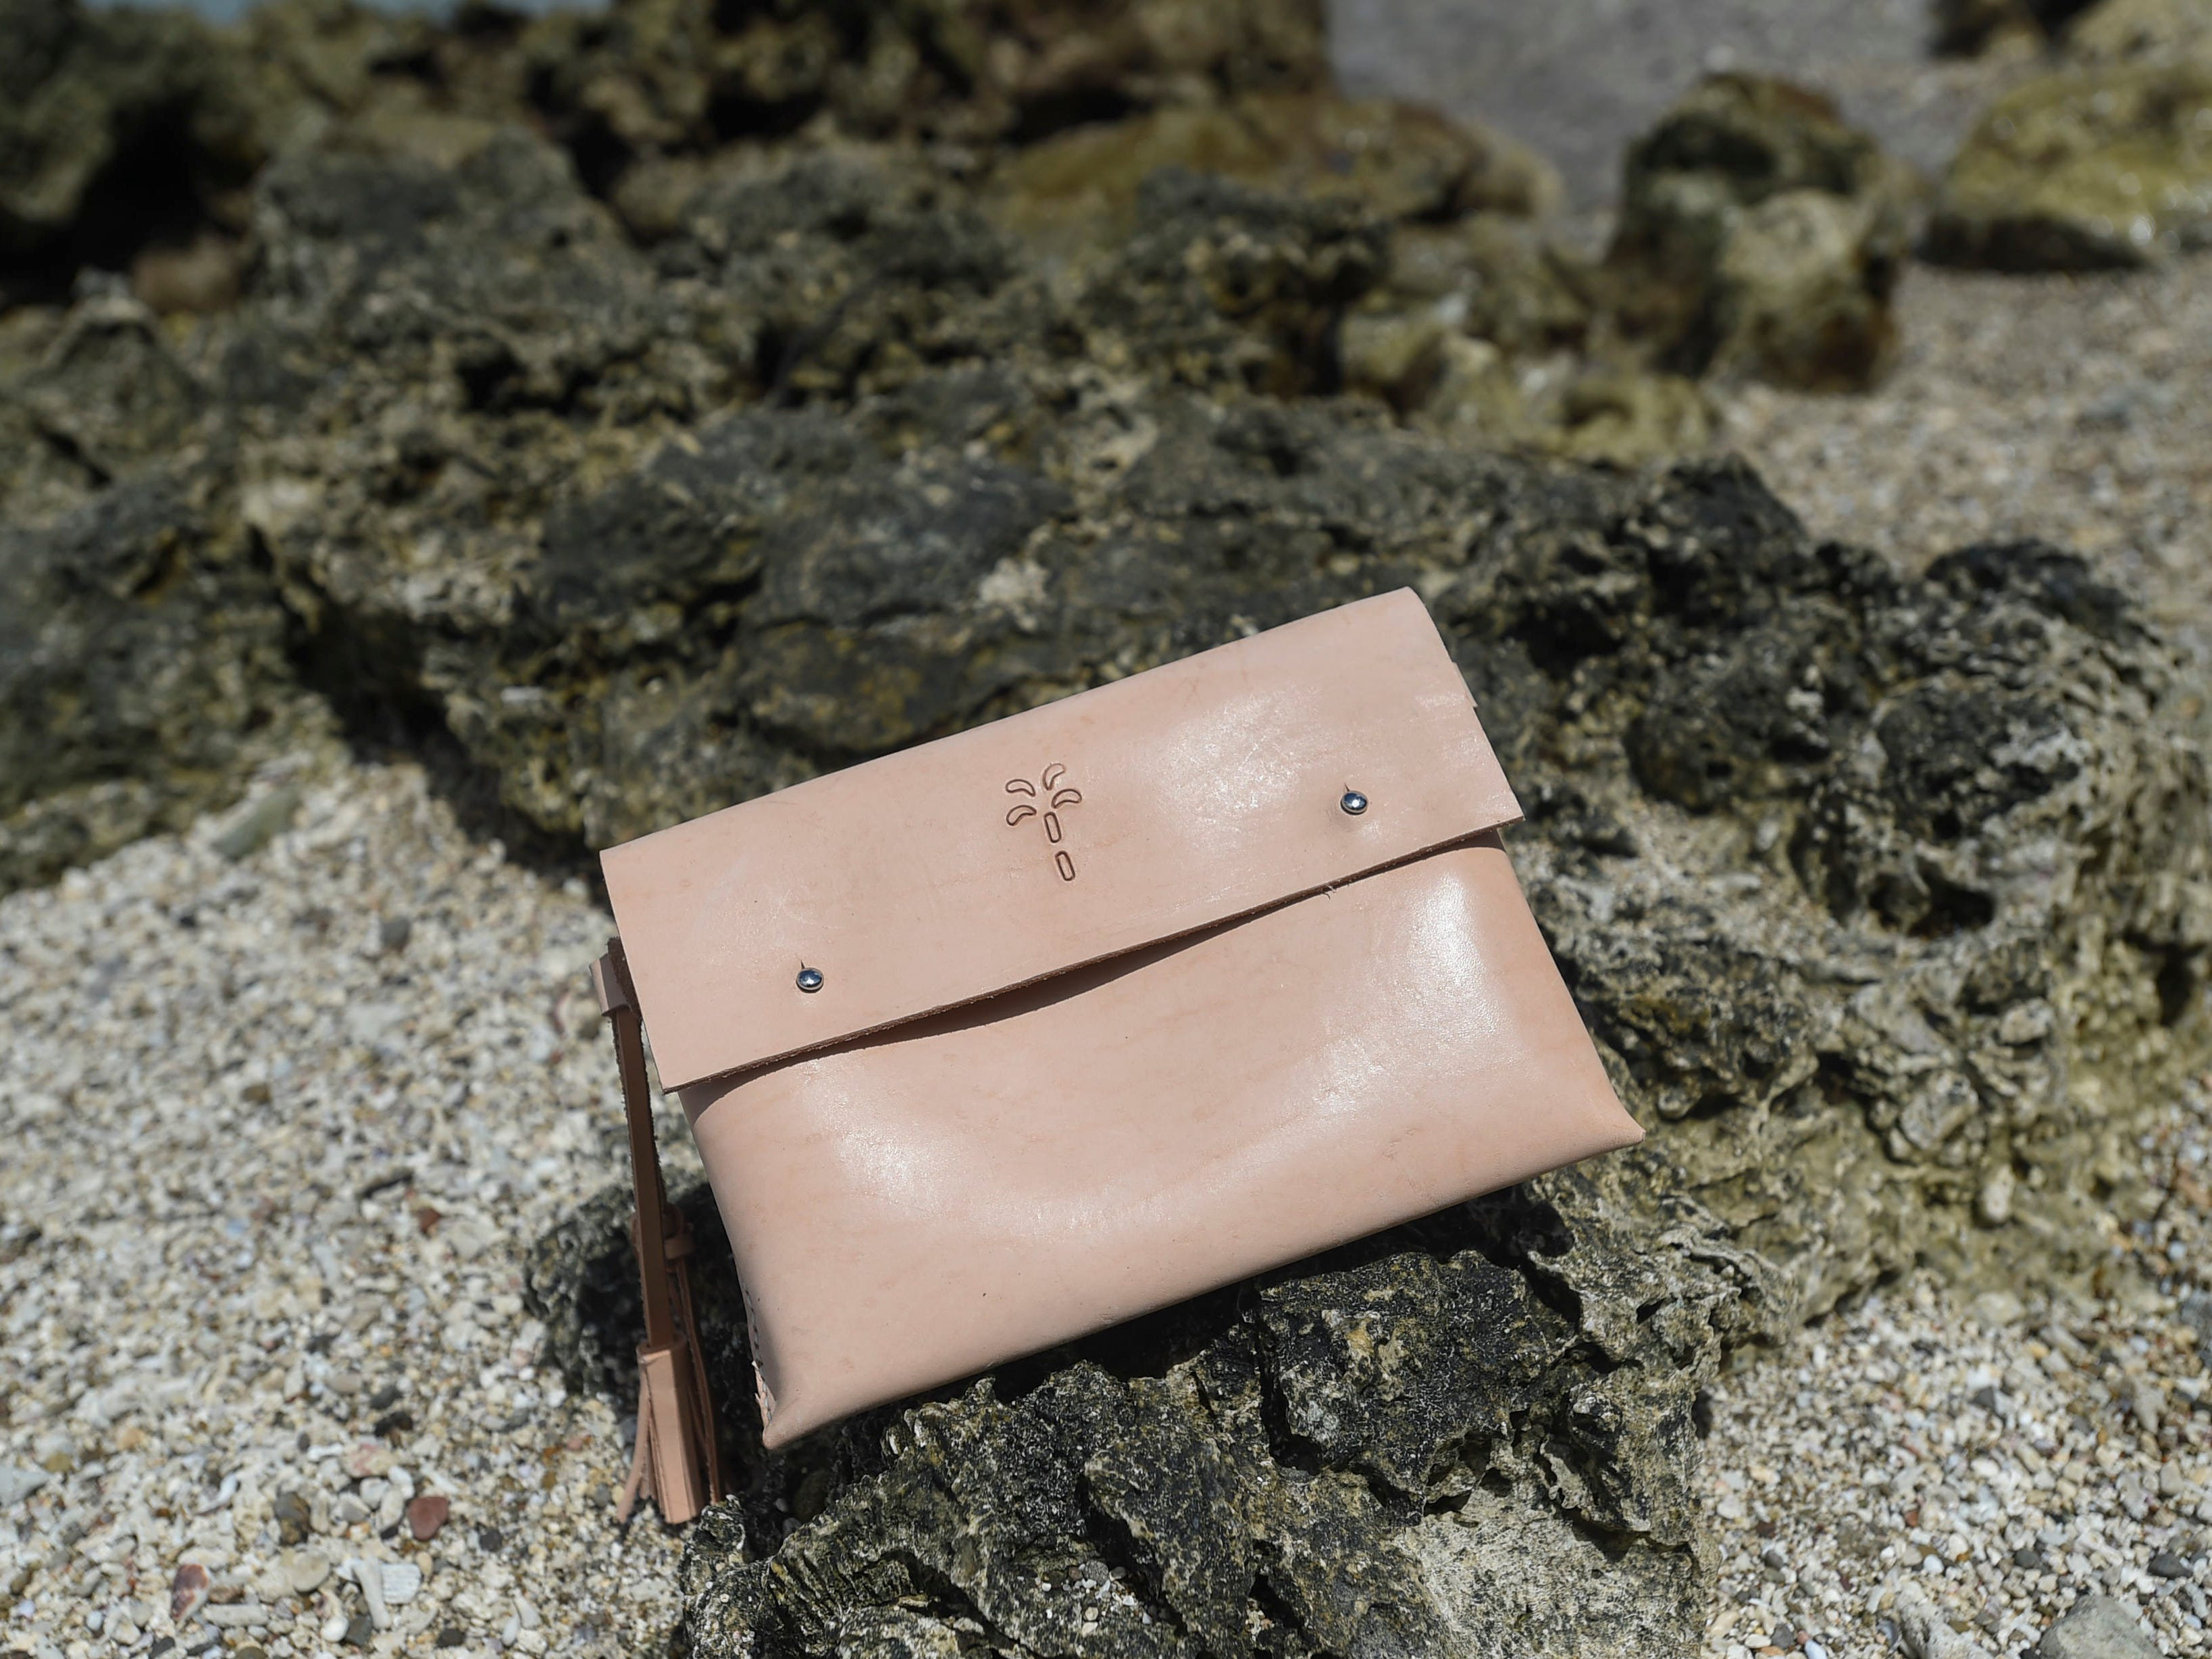 A clutch, handcrafted by The Blue Latitude owner Abby Crain.